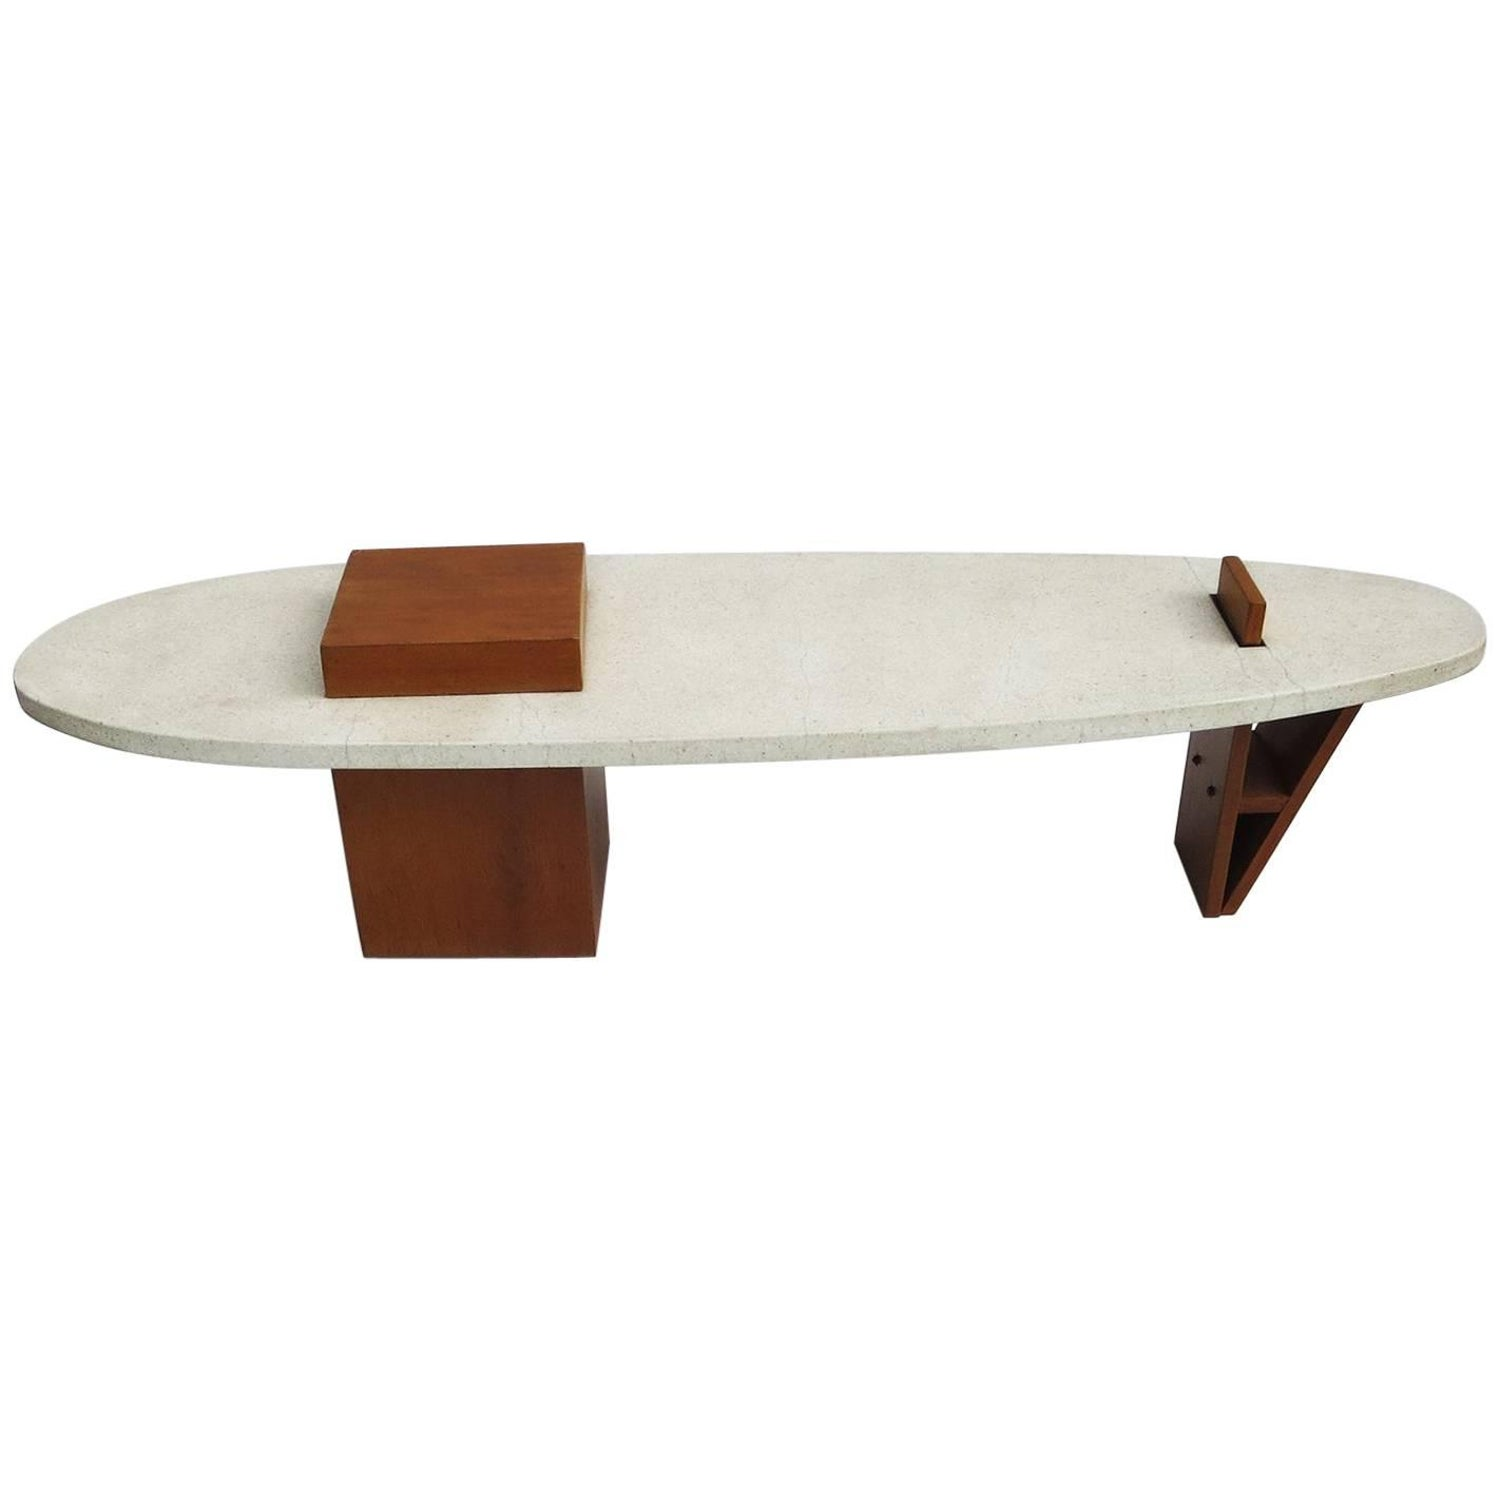 Terrazzo Tables 68 For Sale at 1stdibs